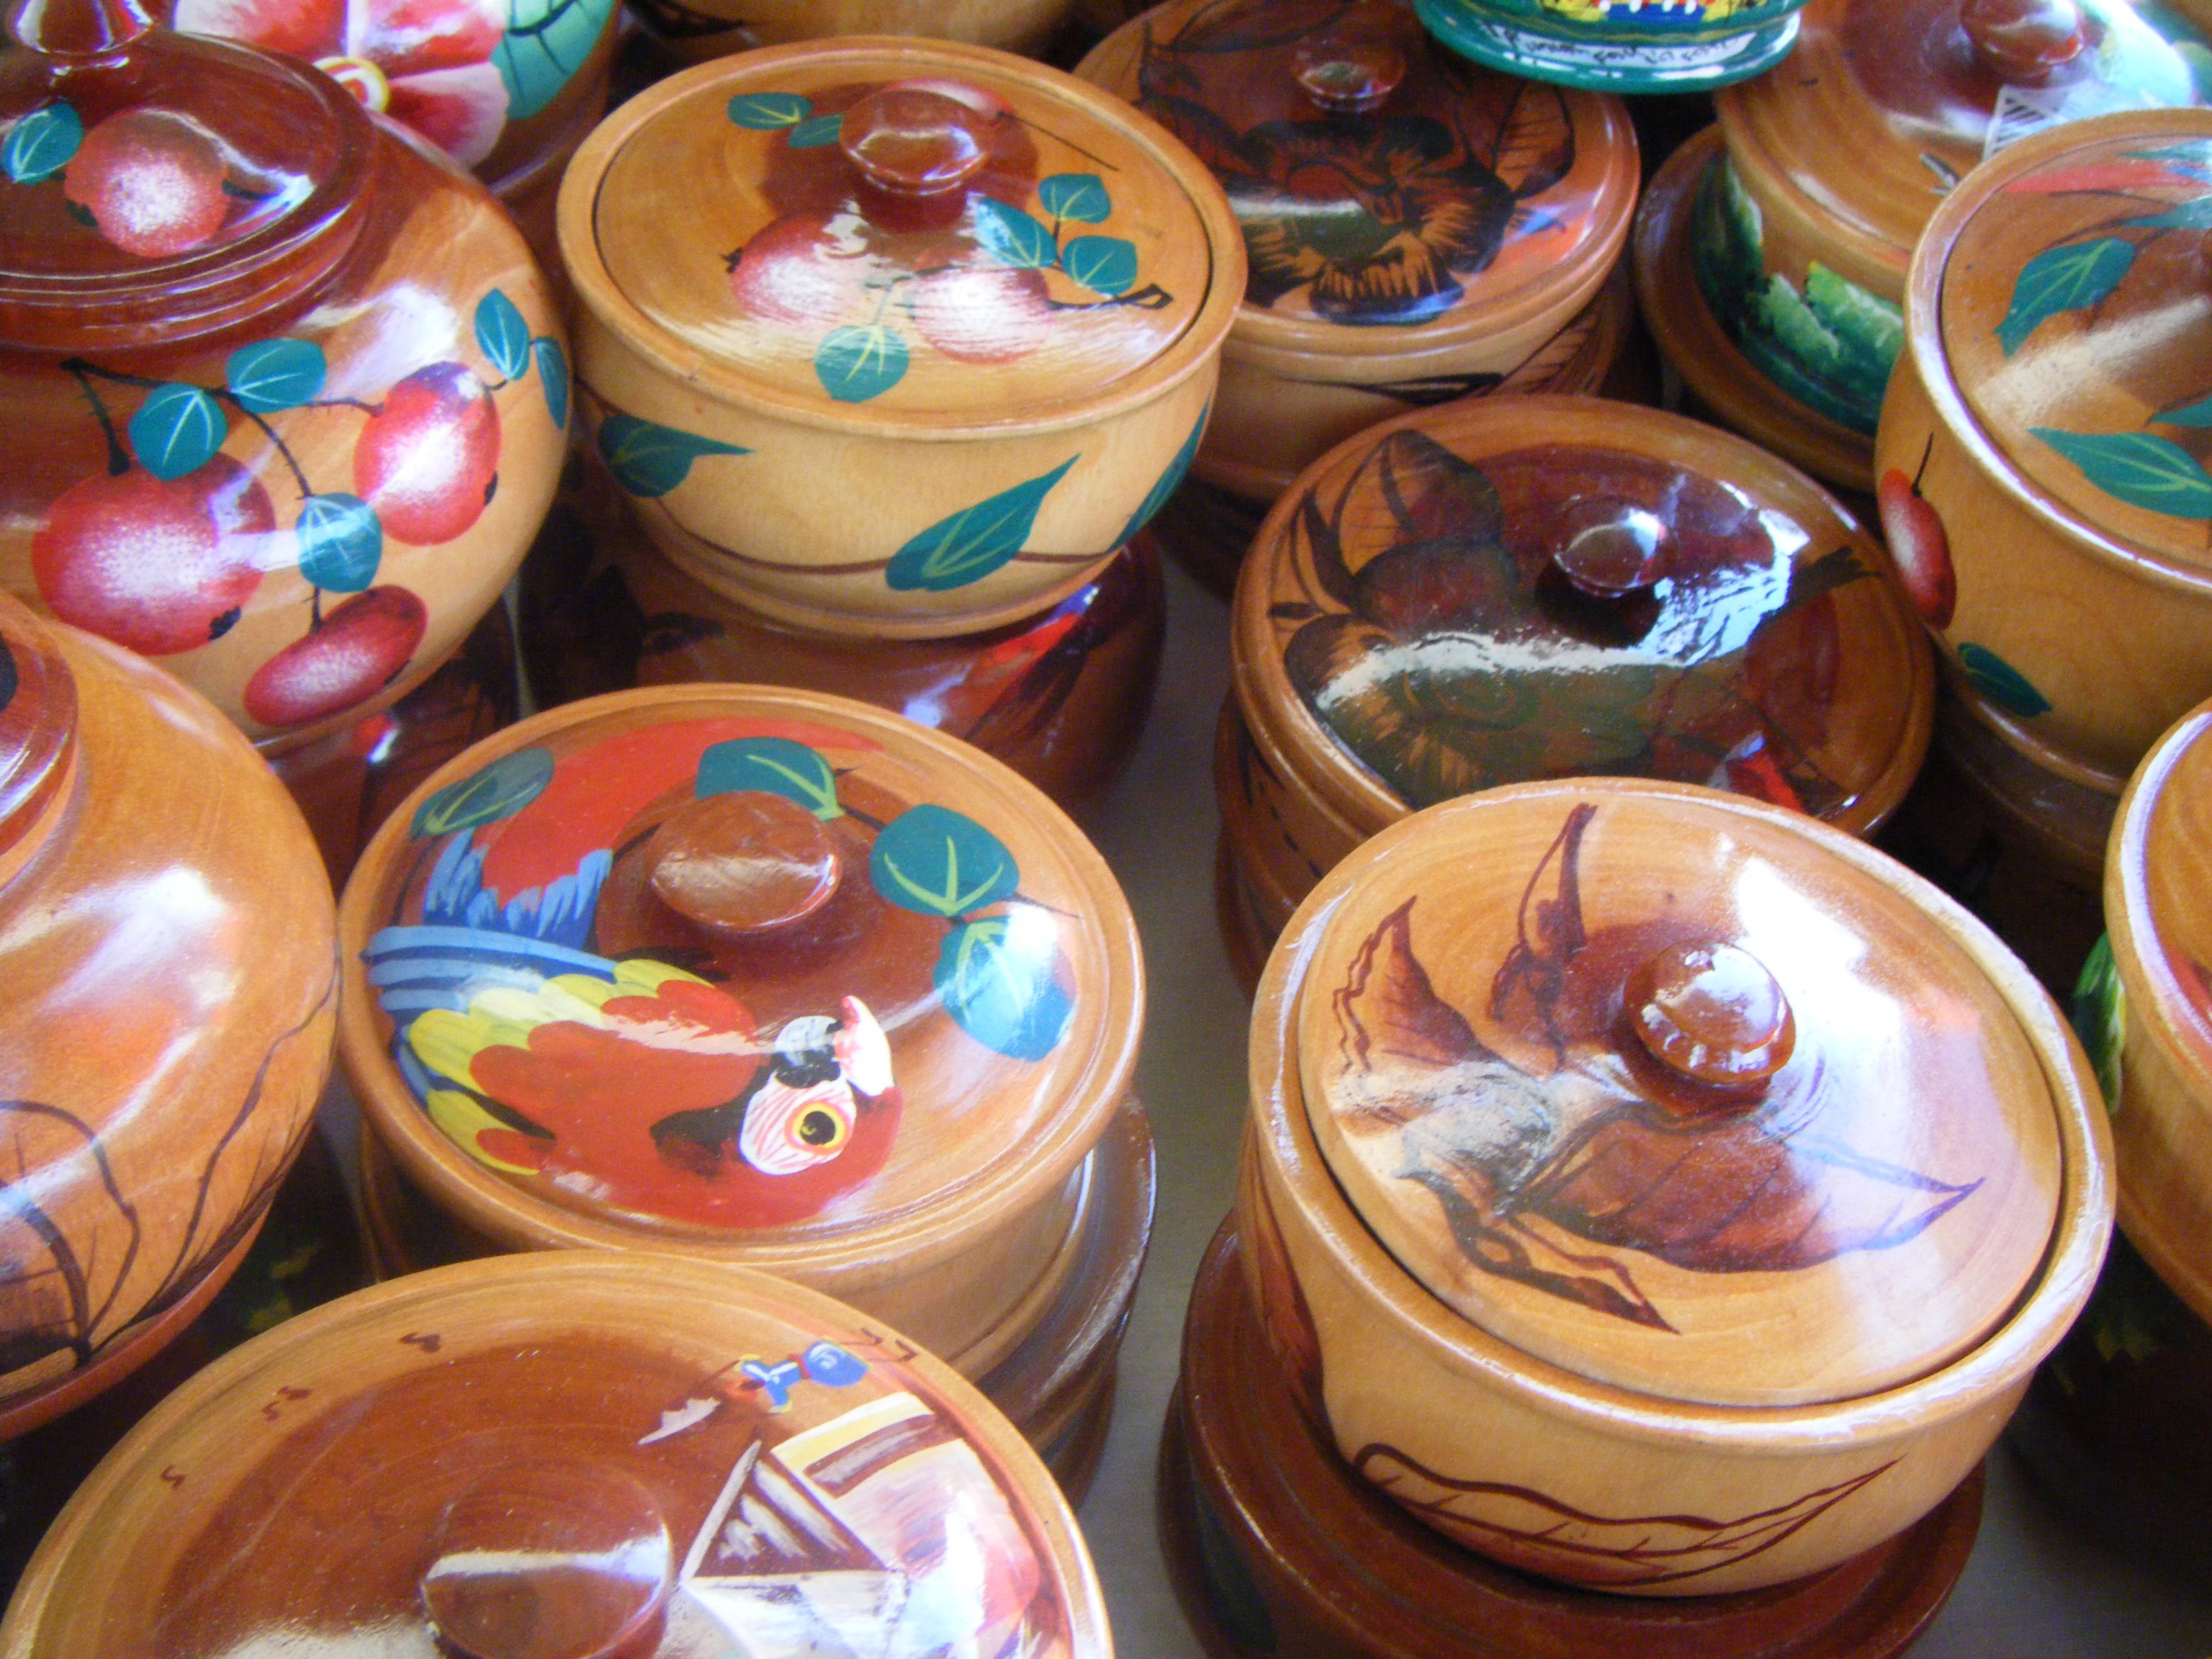 Wooden bowls handmade in haiti home crafts for sale 12 for Homemade crafts for sale